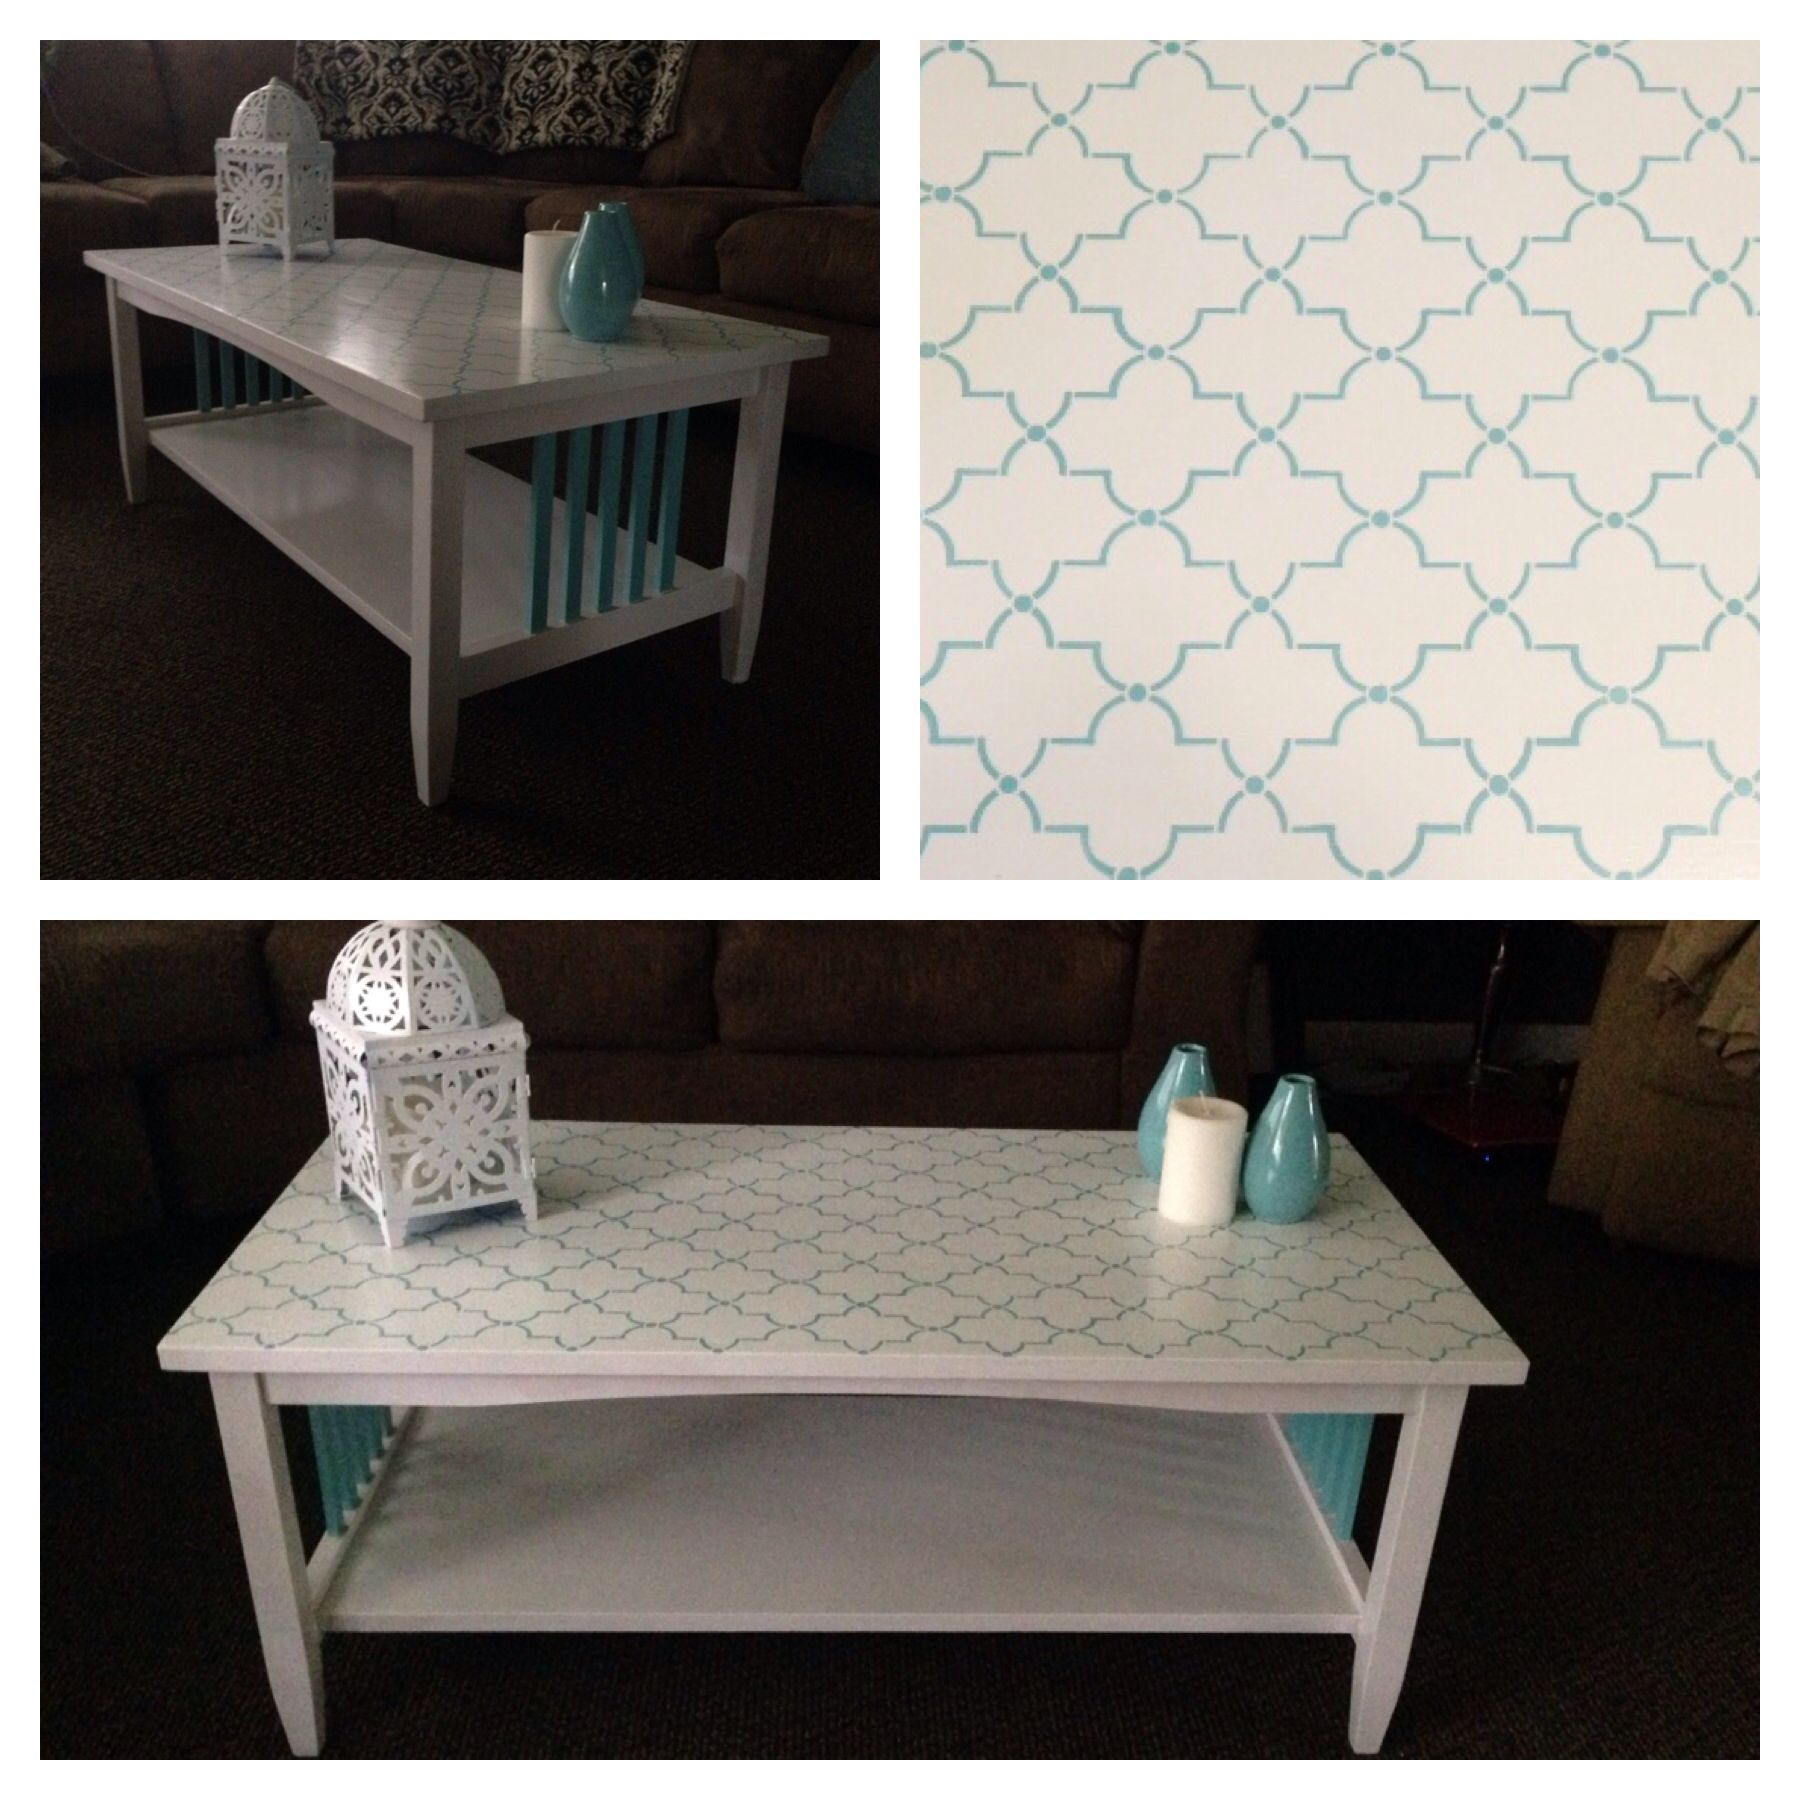 Refinished painted coffee table with turquoise stencil on top